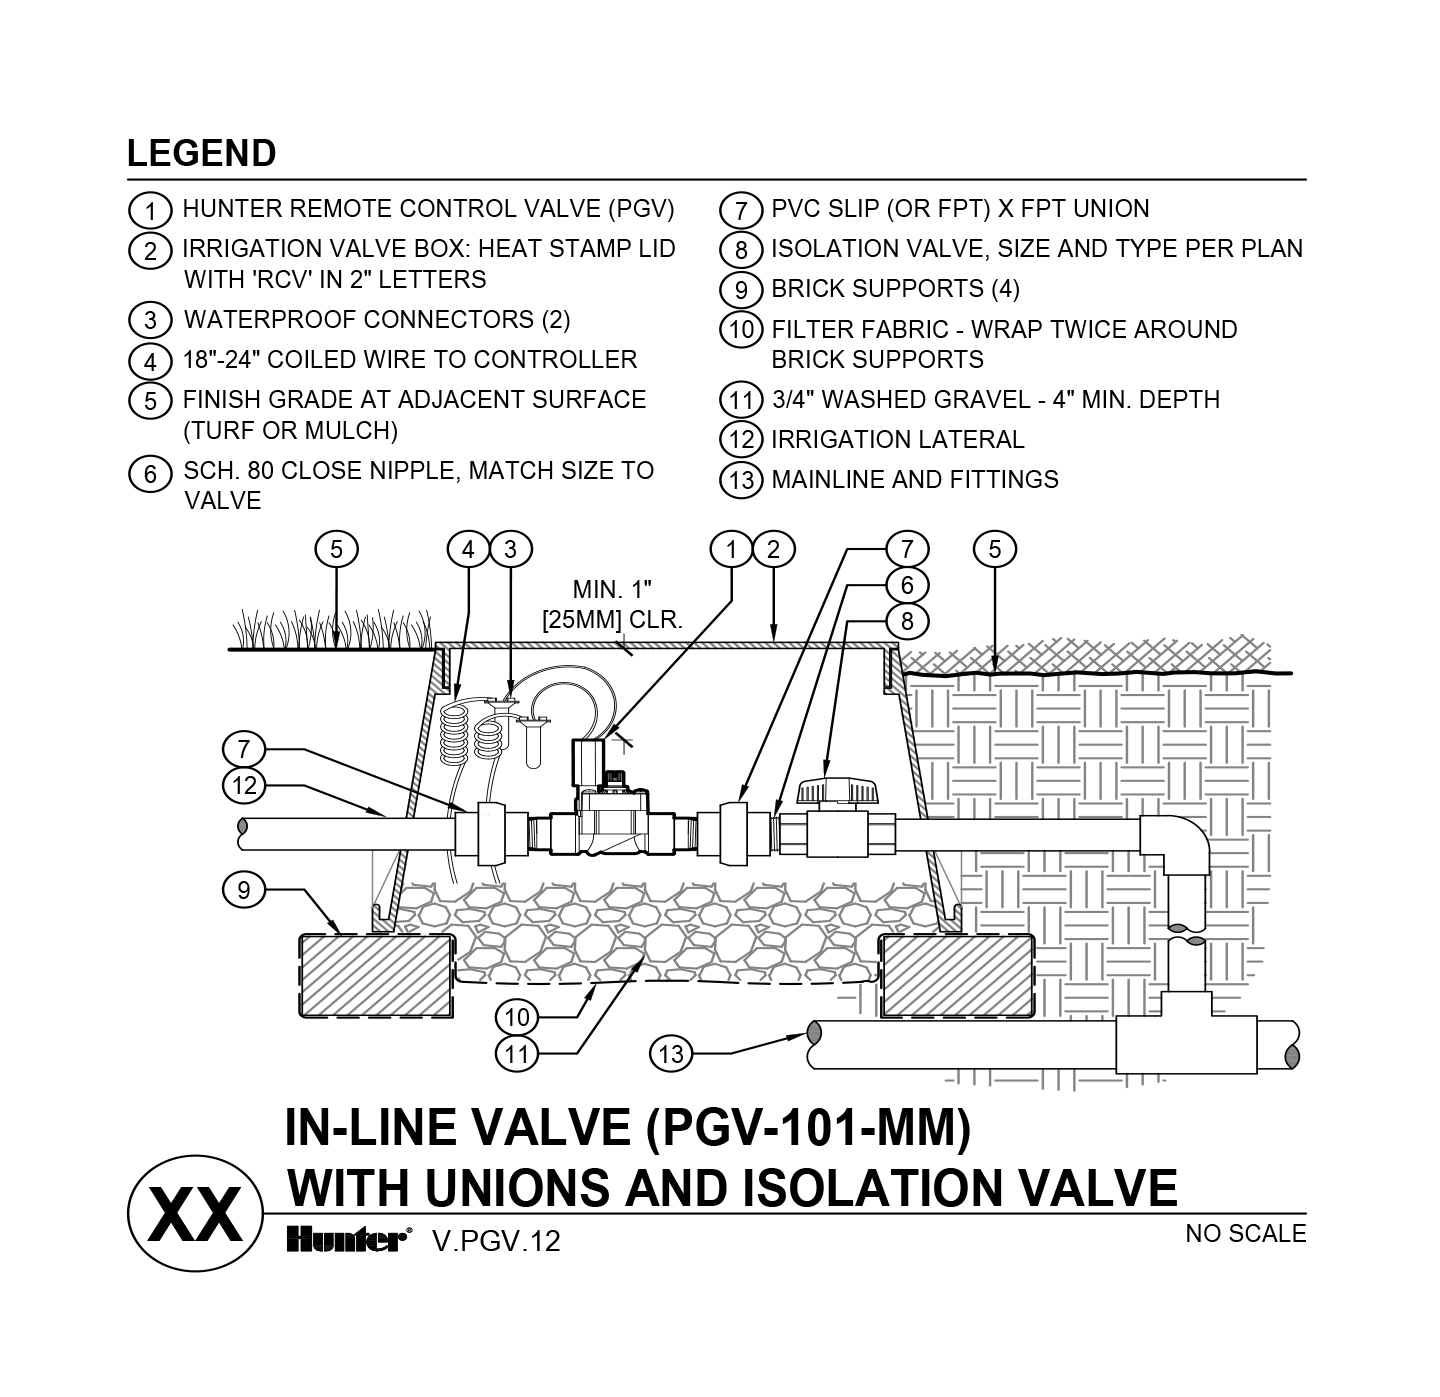 CAD - PGV-101-MM with unions and shutoff valve